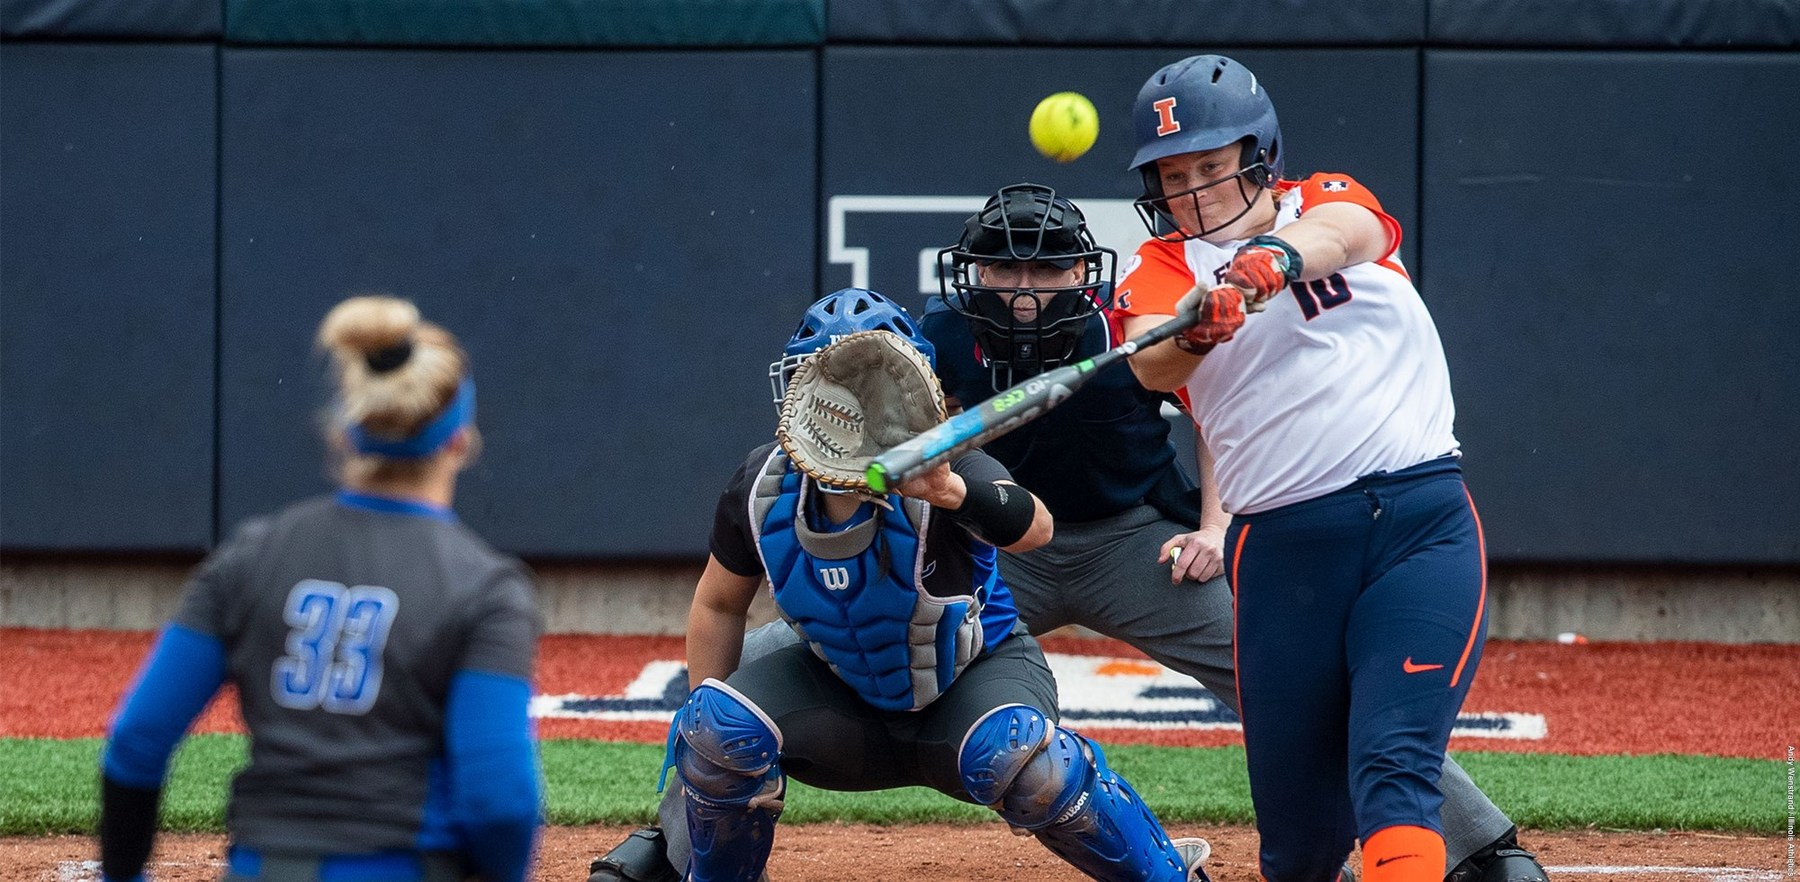 Illini sophomore Shelby Stauffenberg blasts a home run